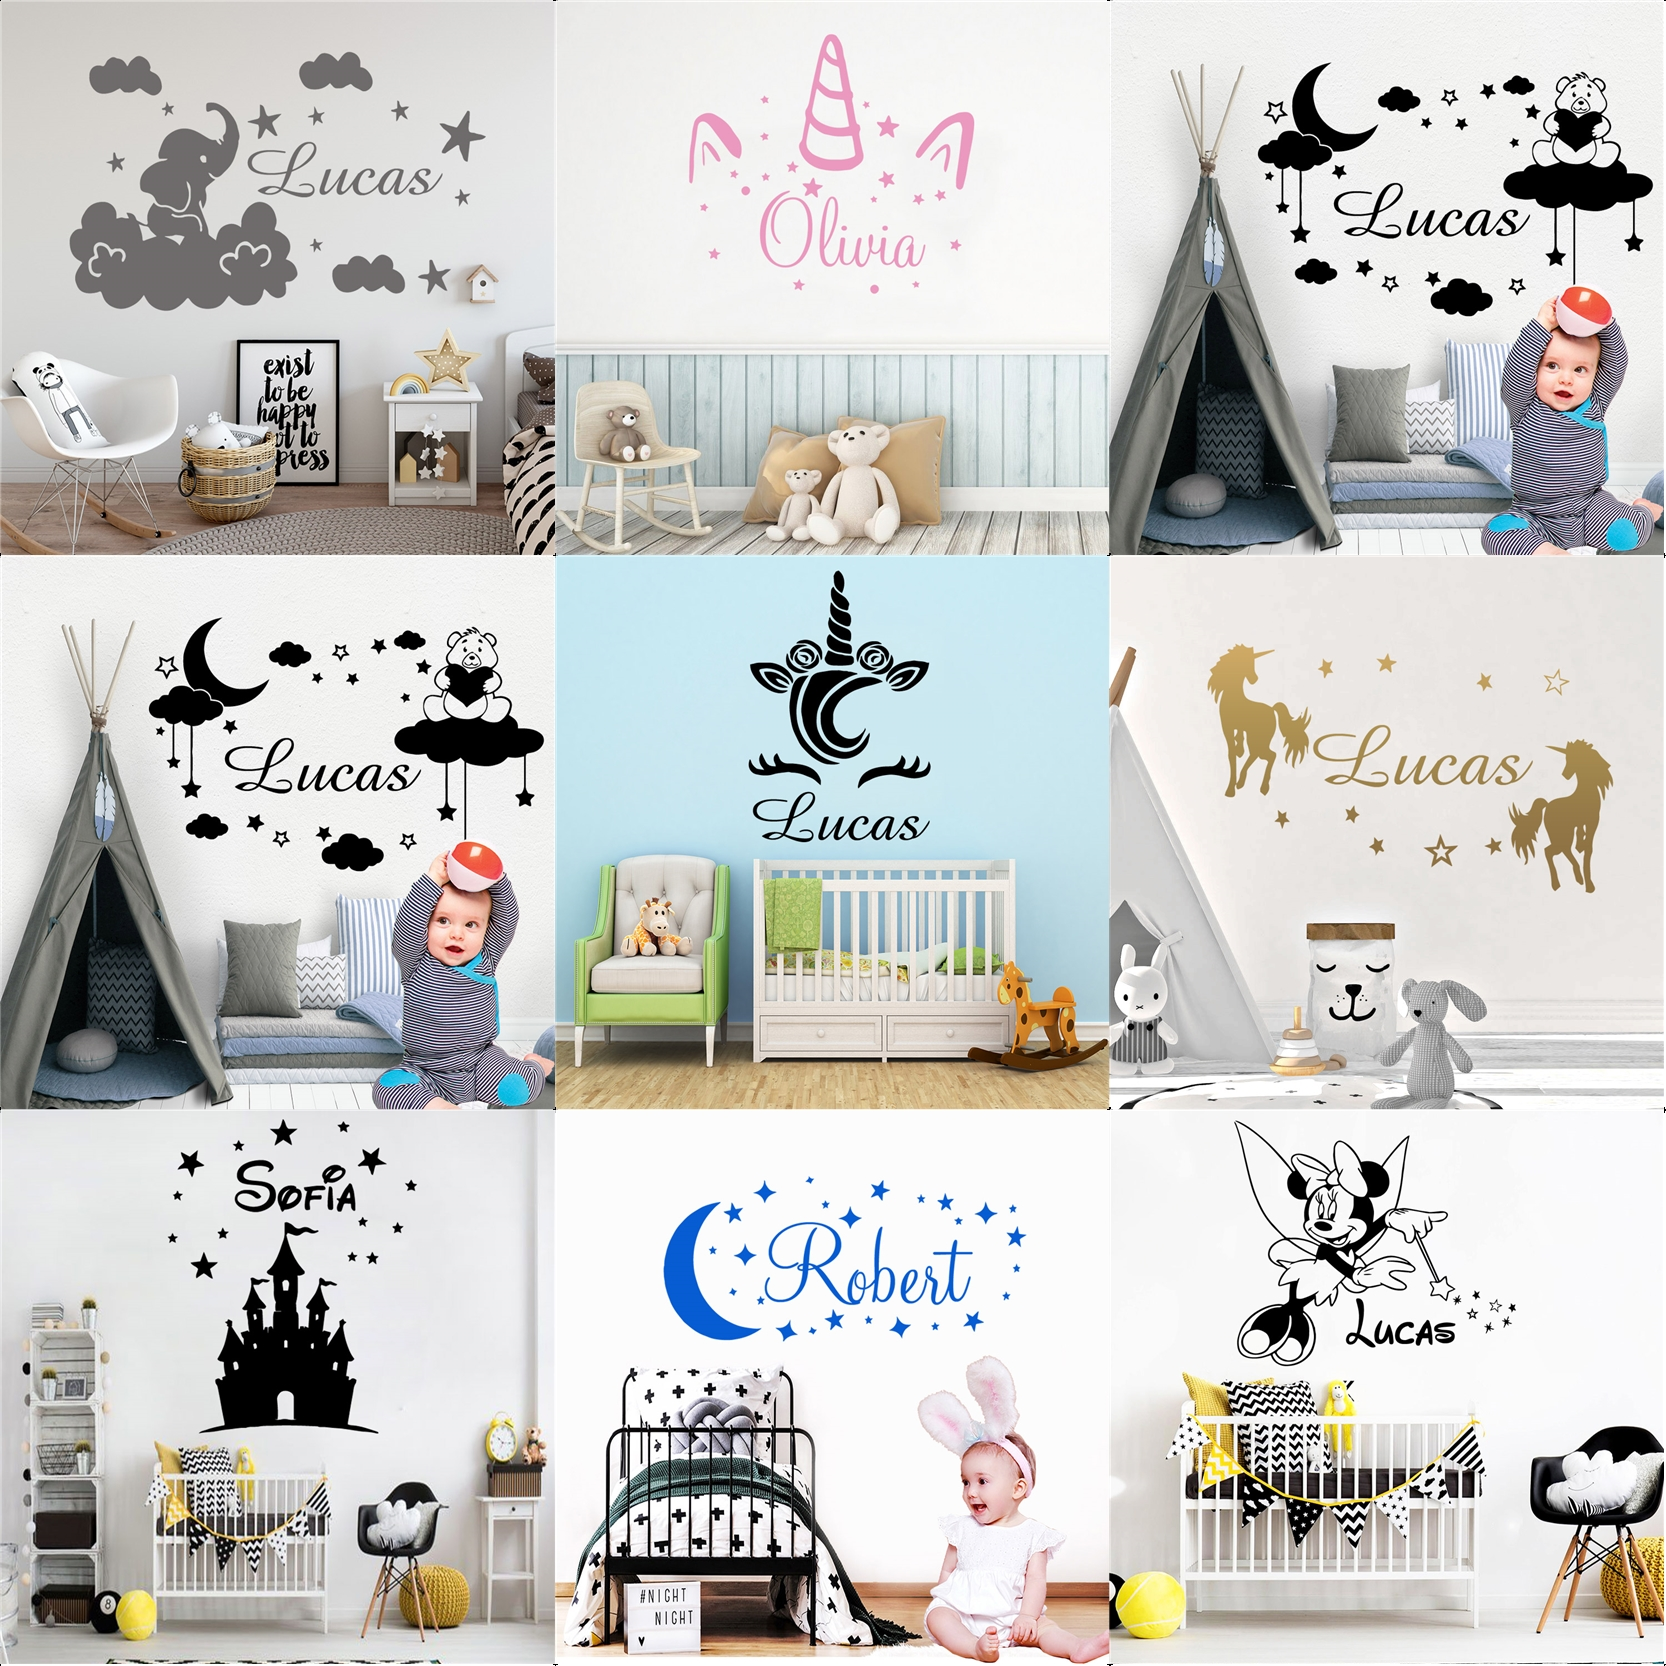 Cute Wall Stickers Mickey Custom Name Sticker Unicorn Decal For Kids Room Decor Fairy Tale Wallpaper Poster Baby Poster Mural